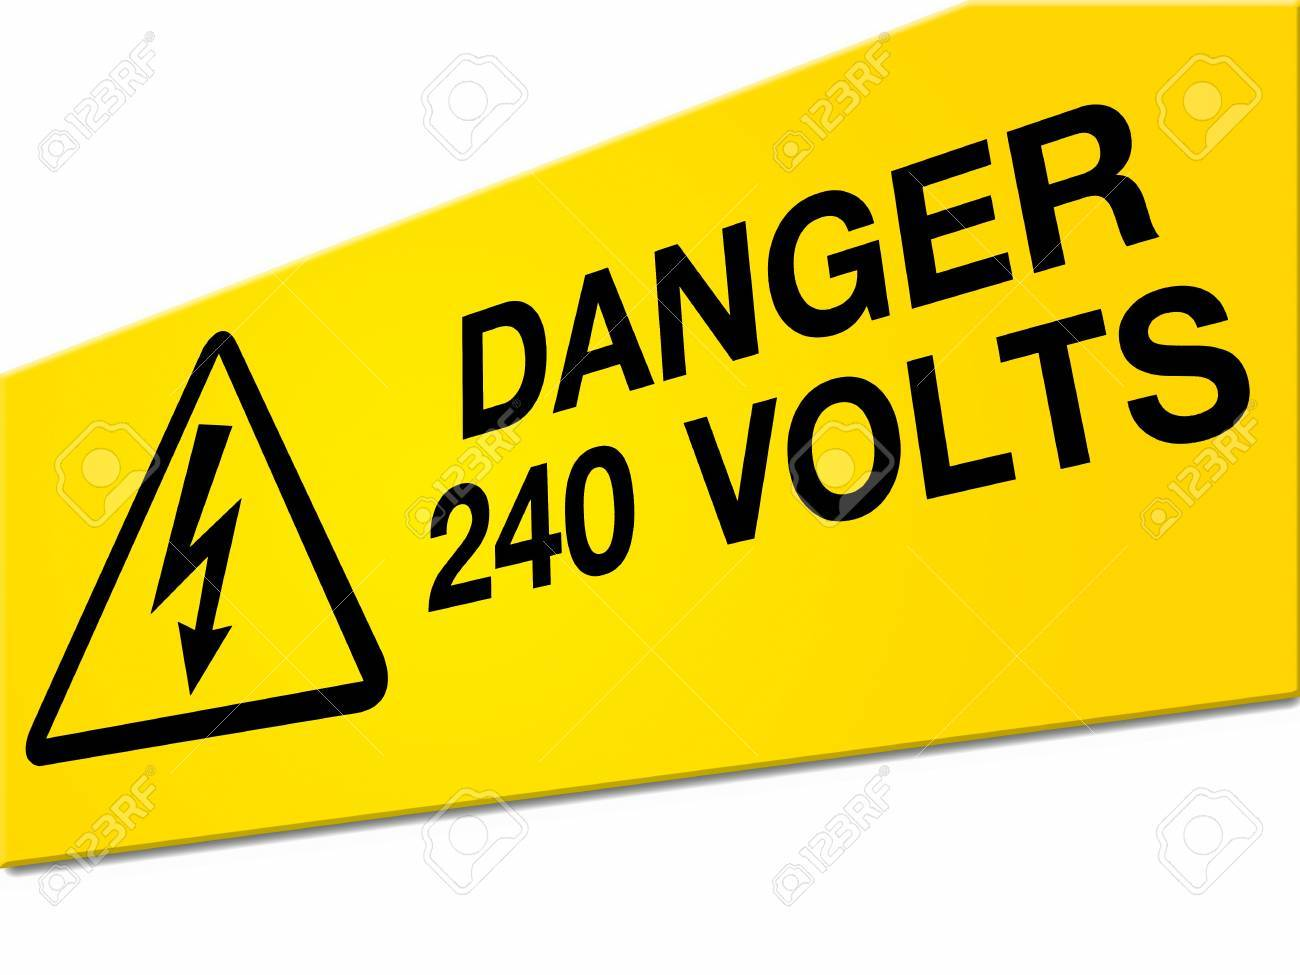 Danger high voltage sign isolated on white background Stock Photo - 9630684